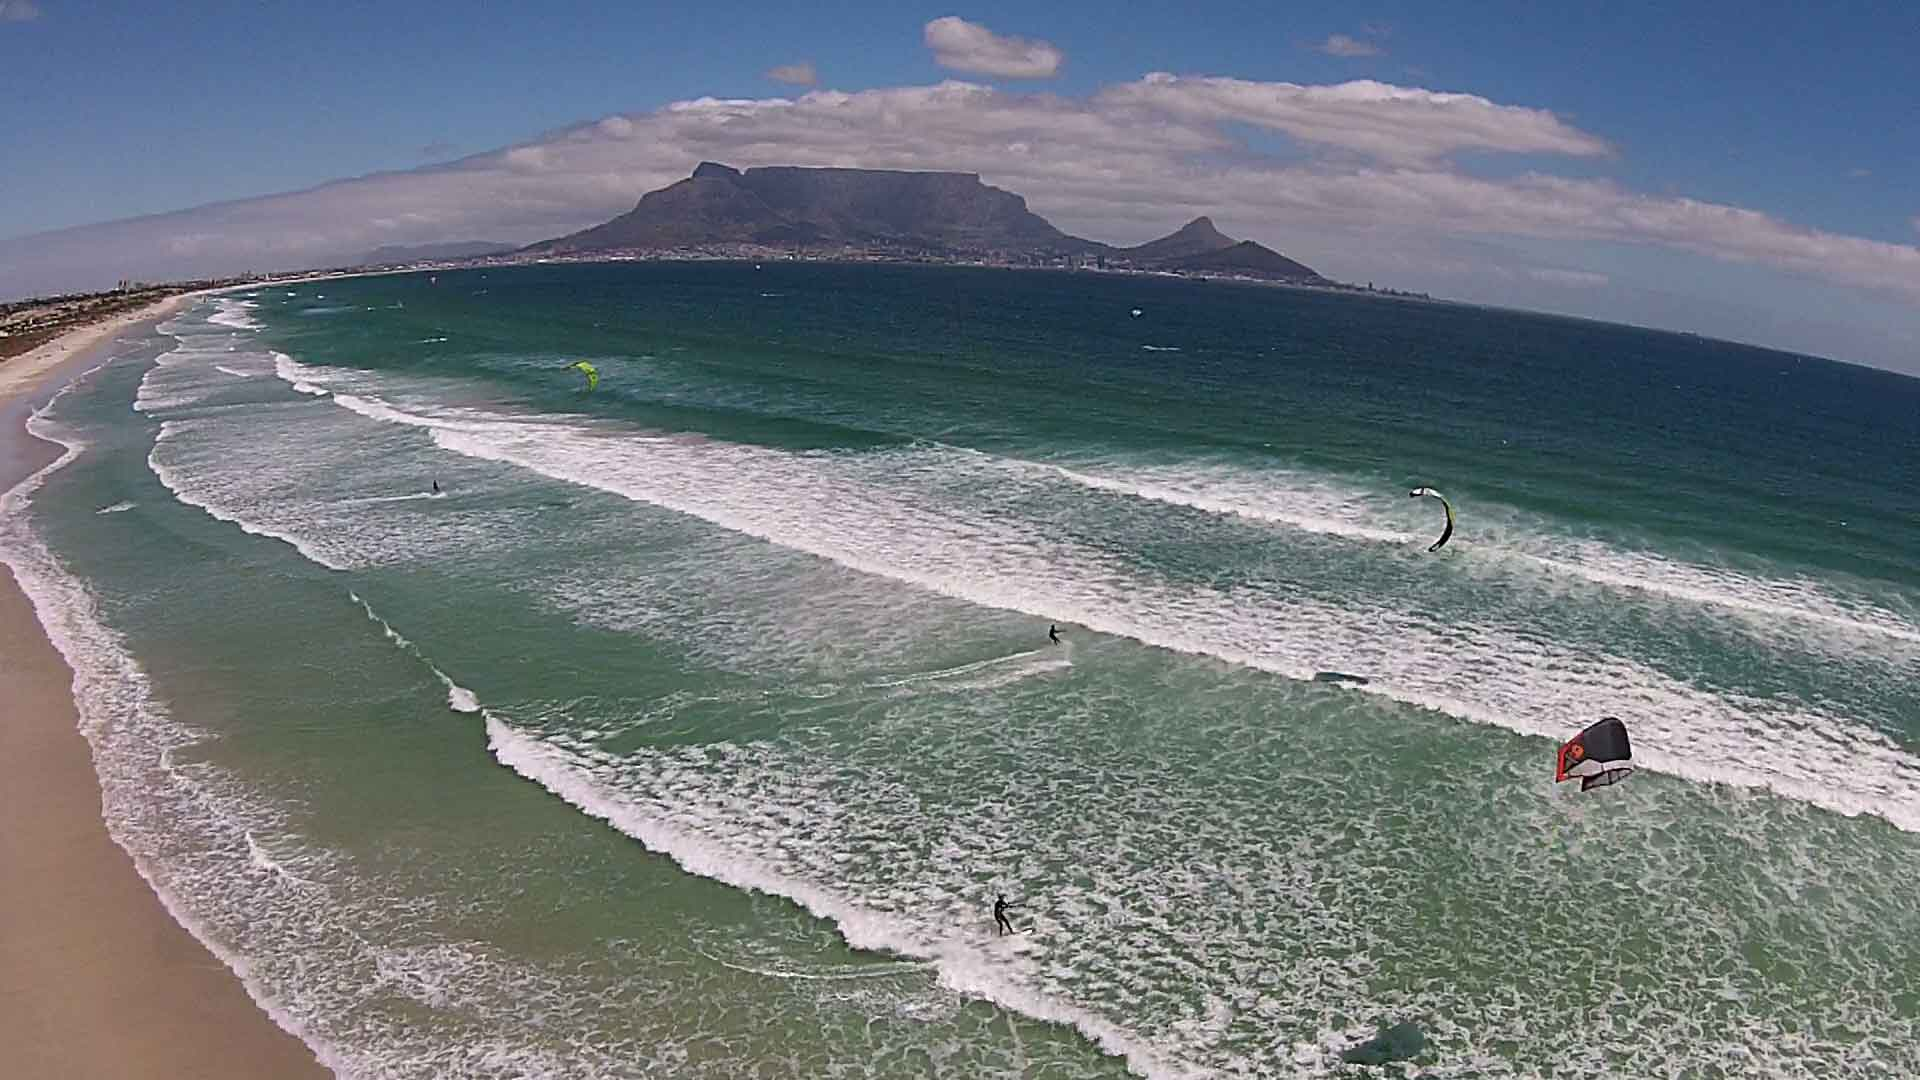 wave_kitesurfing_south_africa_4c